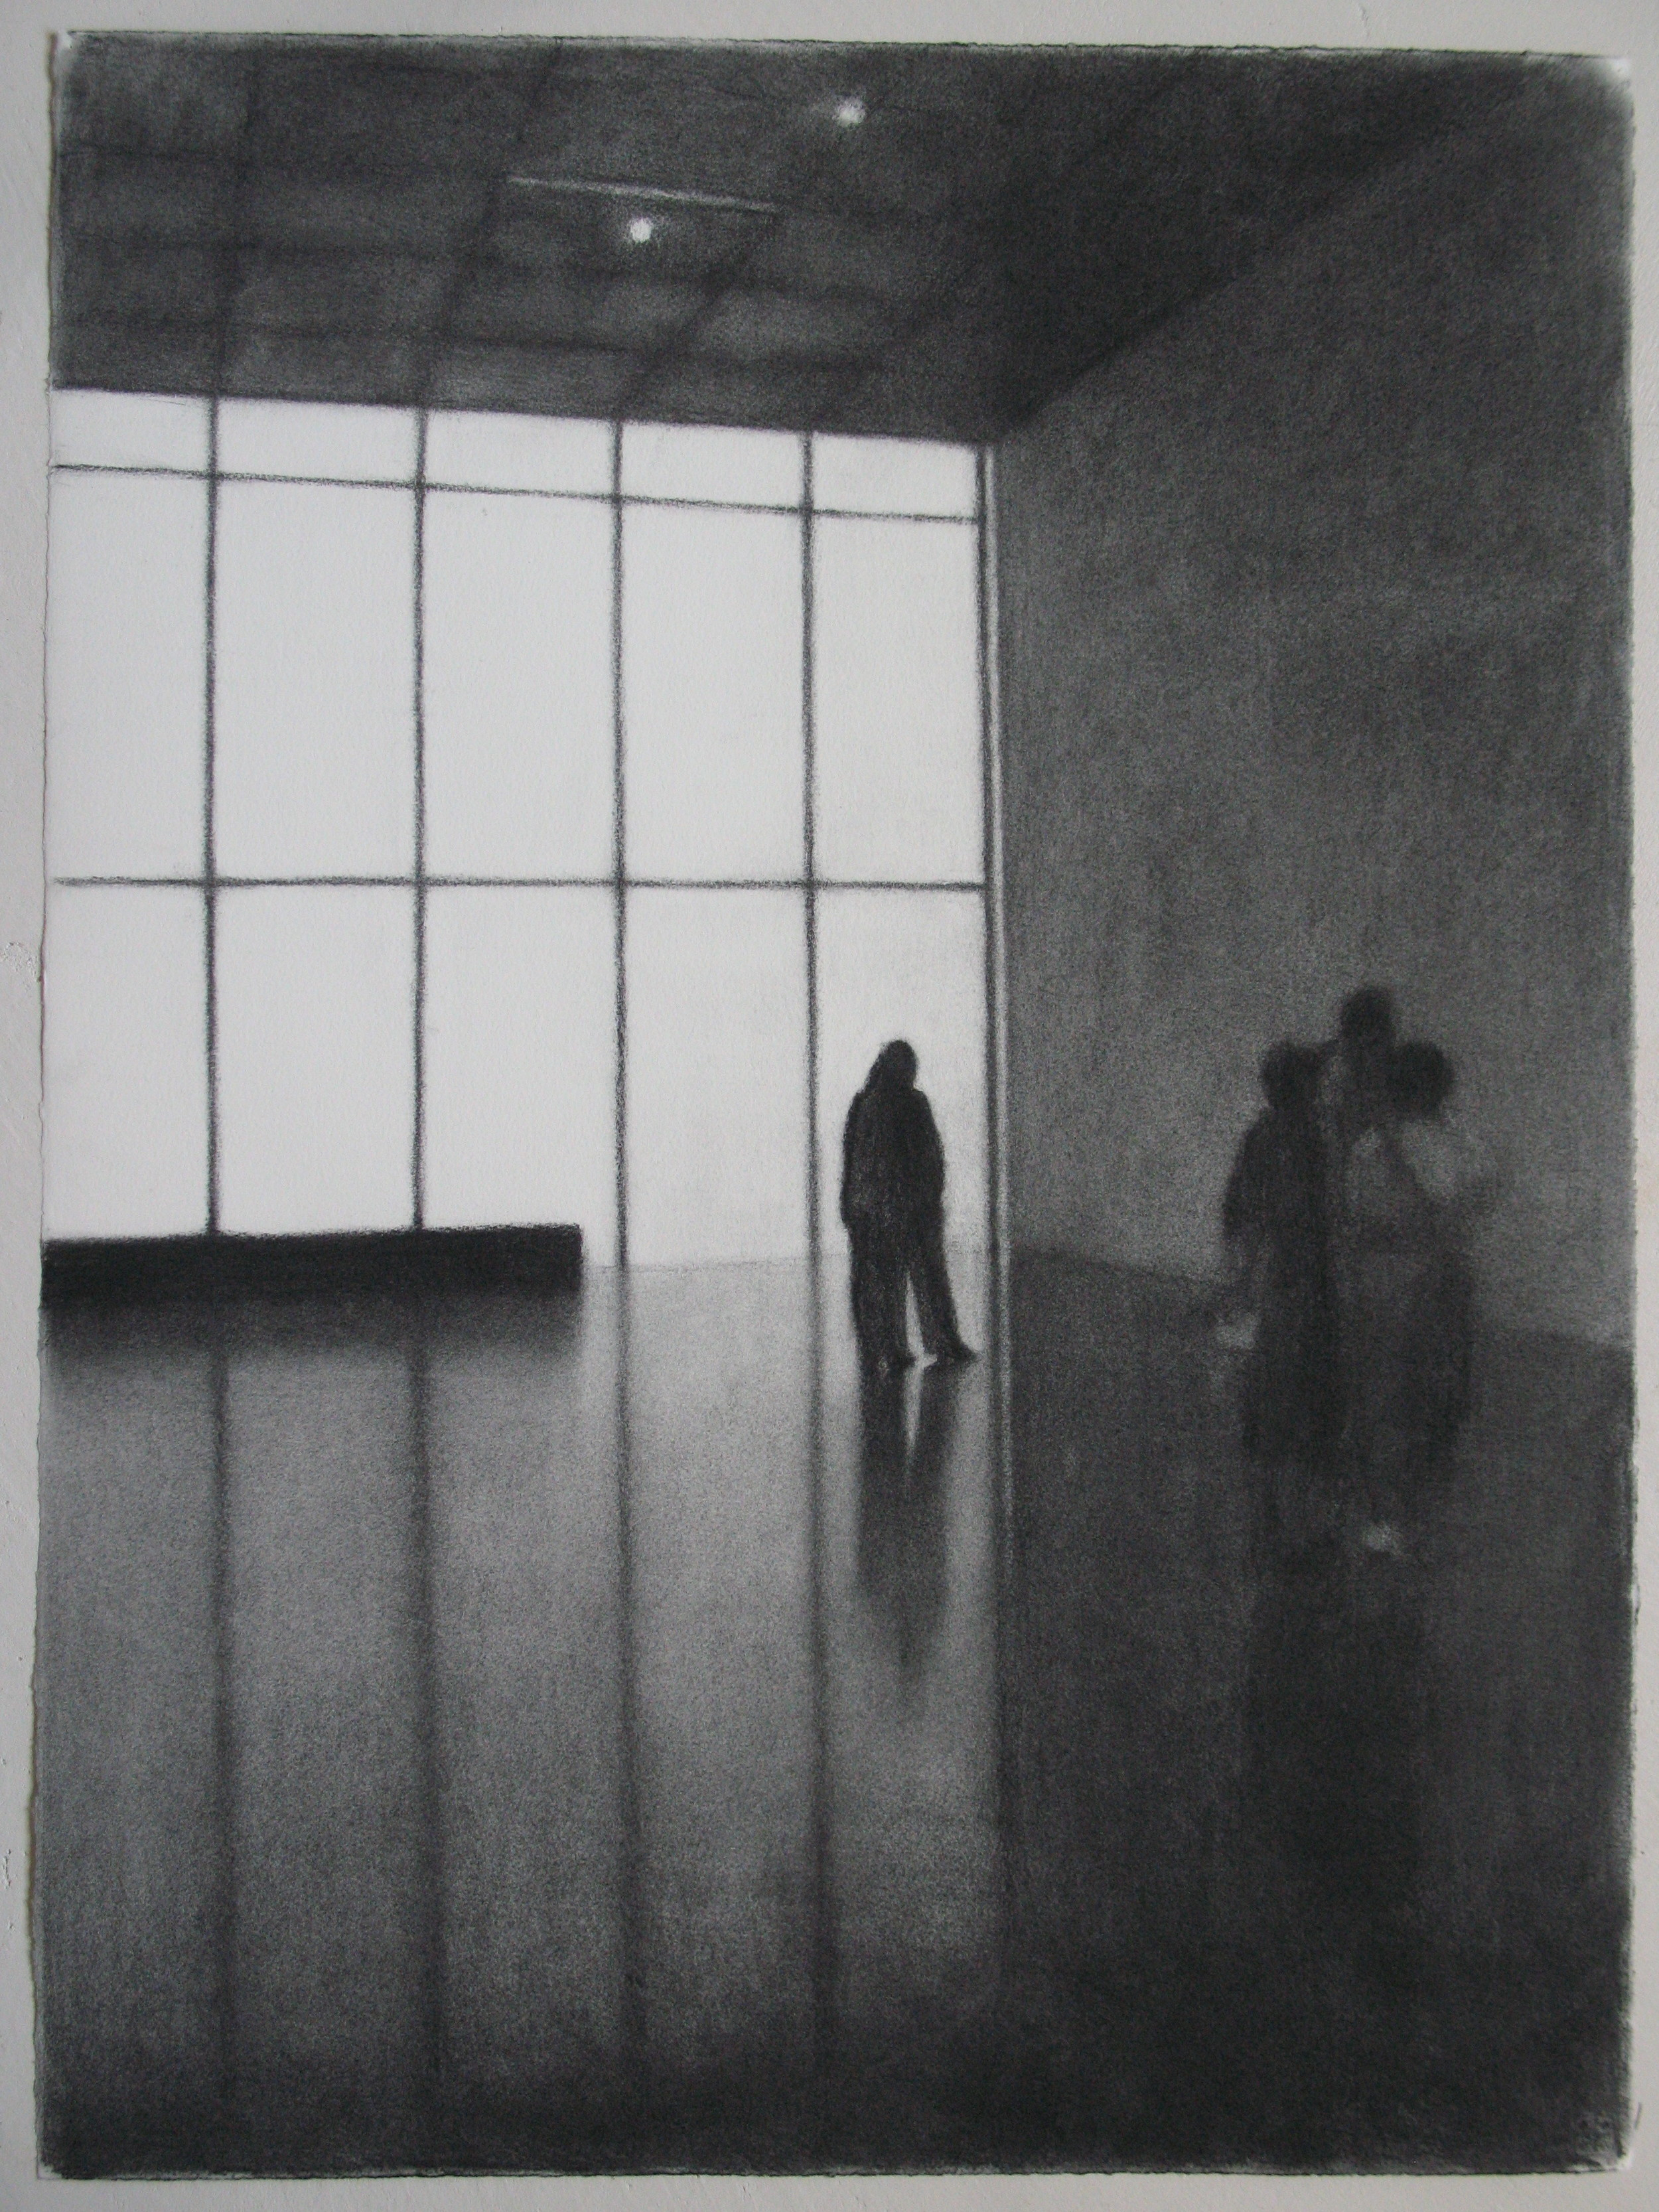 Kunsthaus Bregenz II, 2007, willow charcoal on paper, 56x75cm.